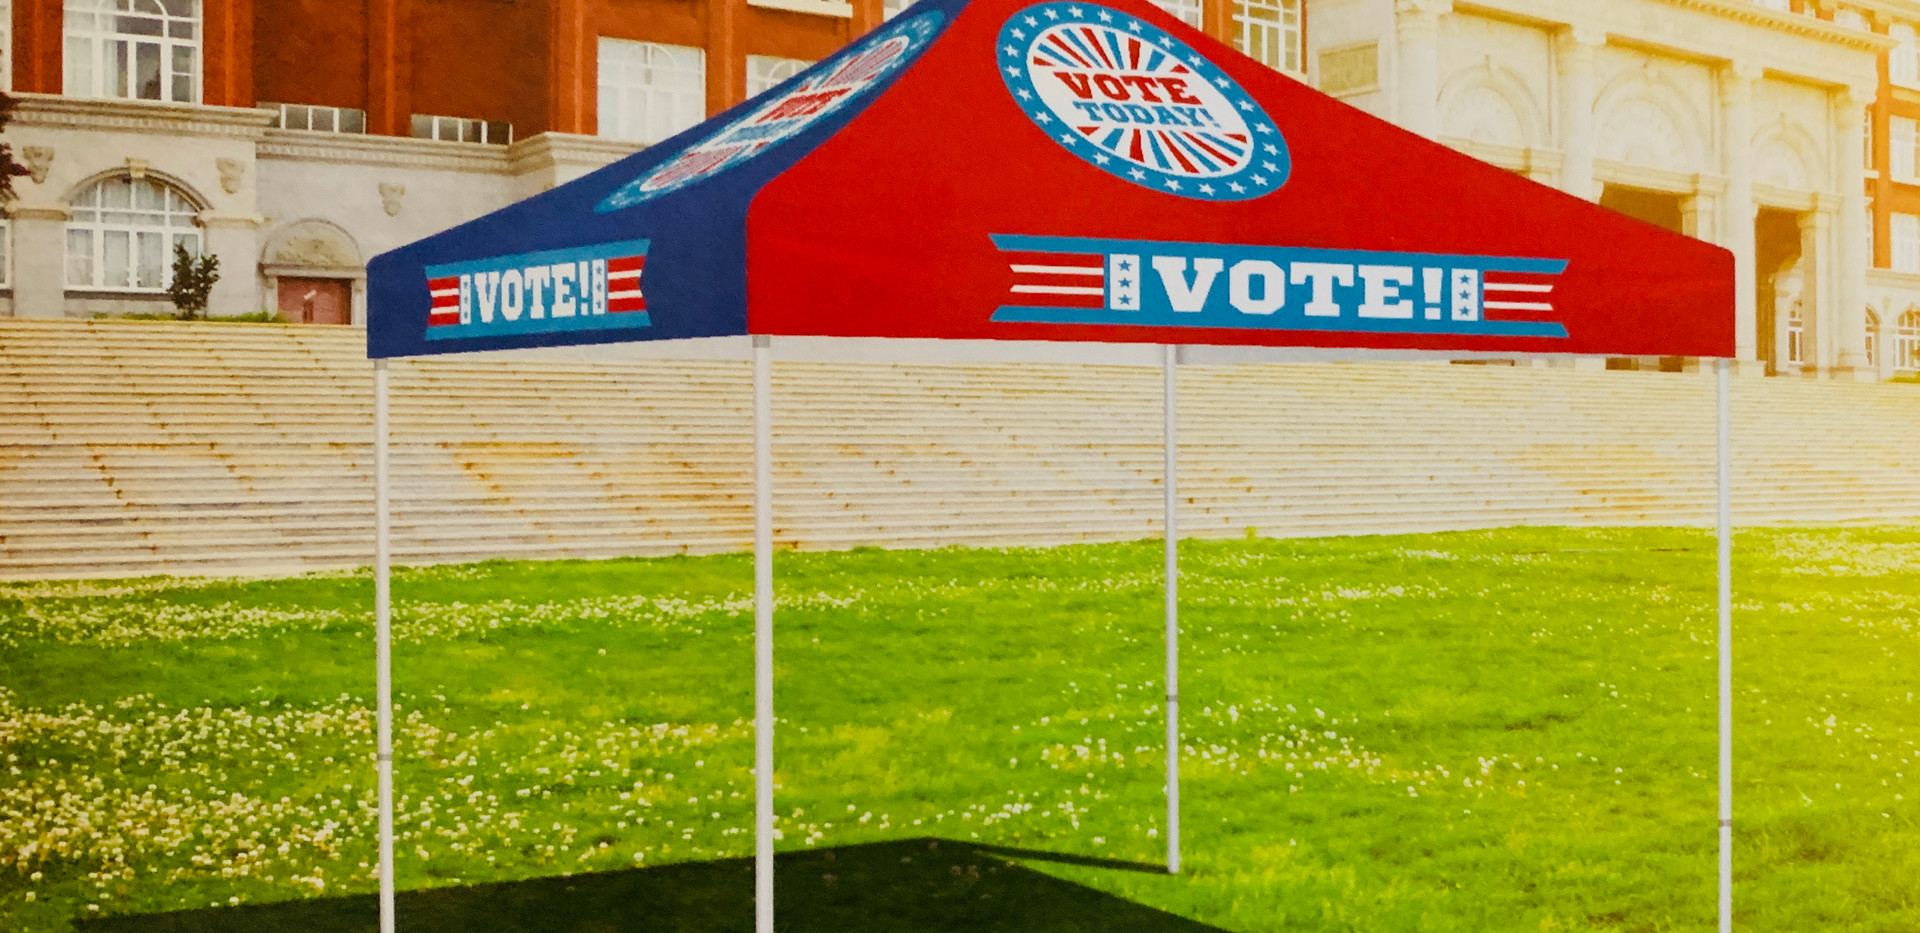 political event tent display.jpg